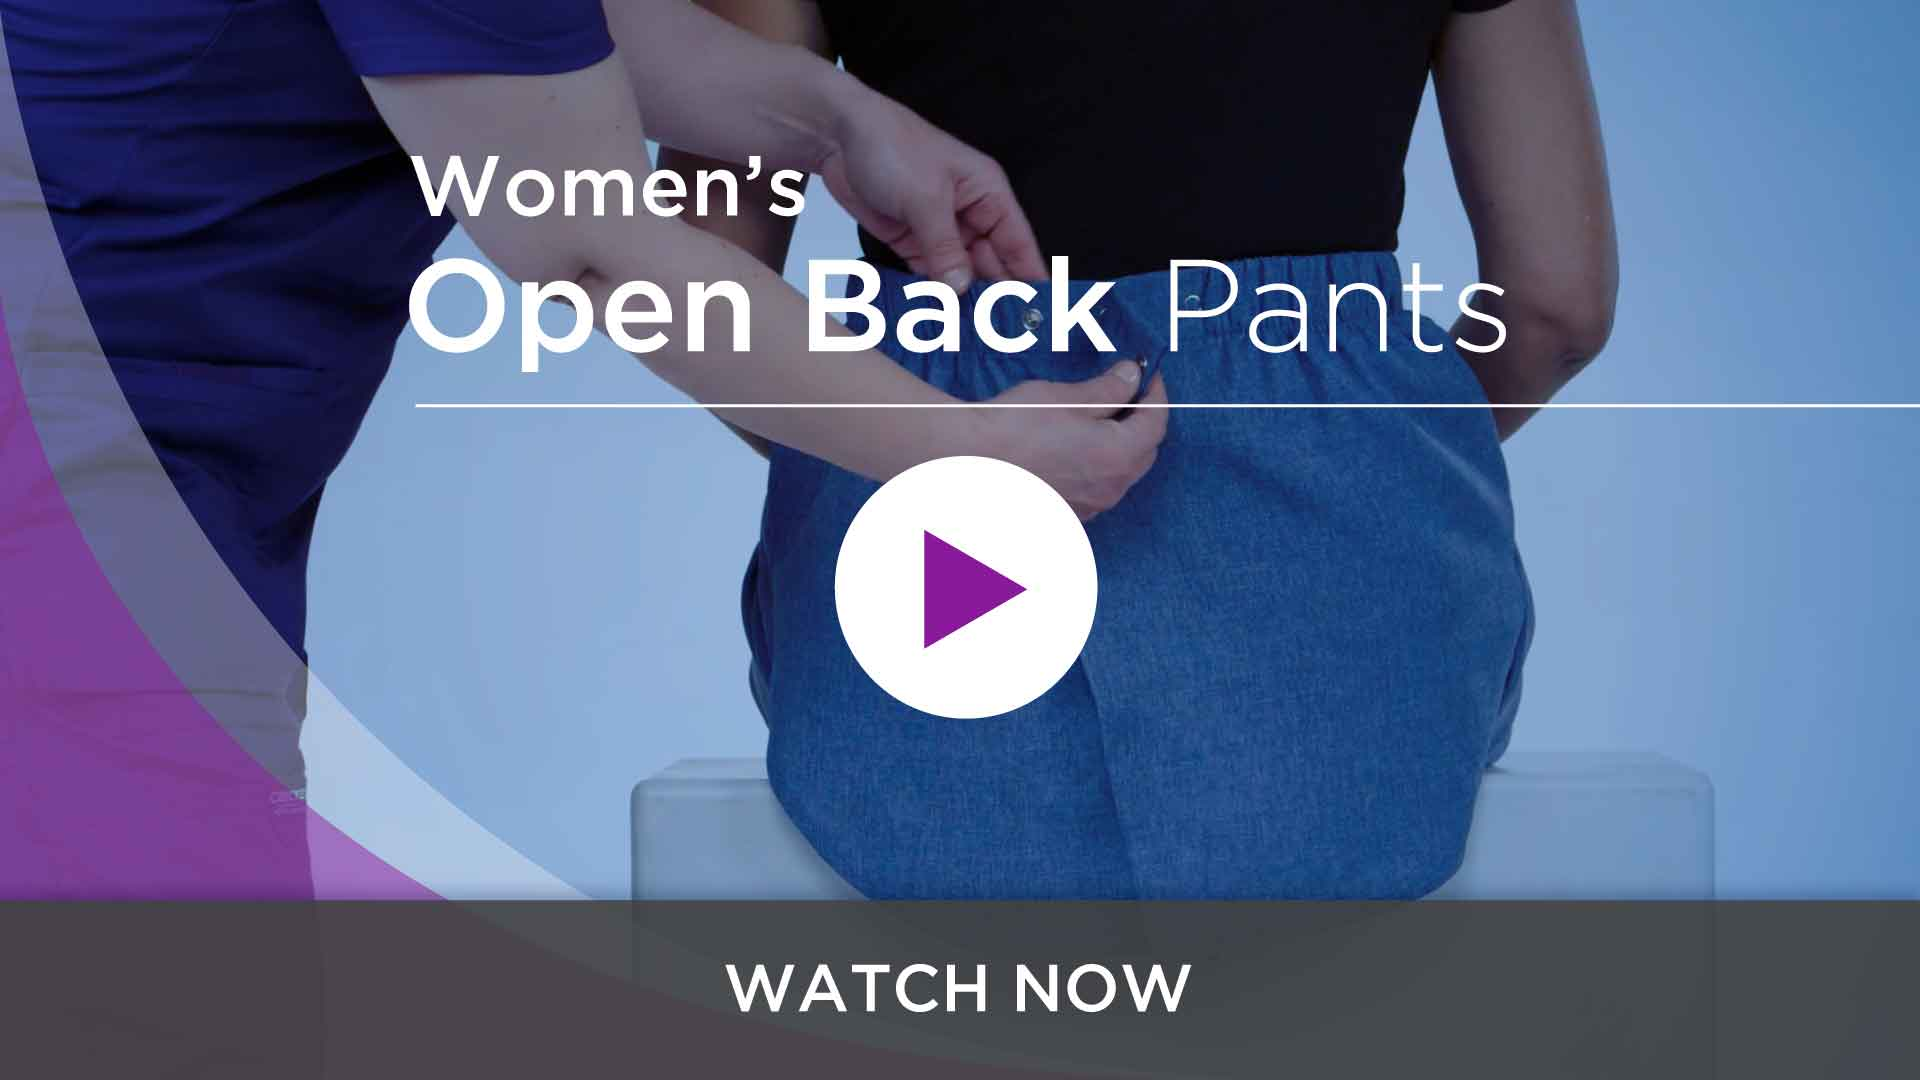 Women's Adaptive Open Back Pants